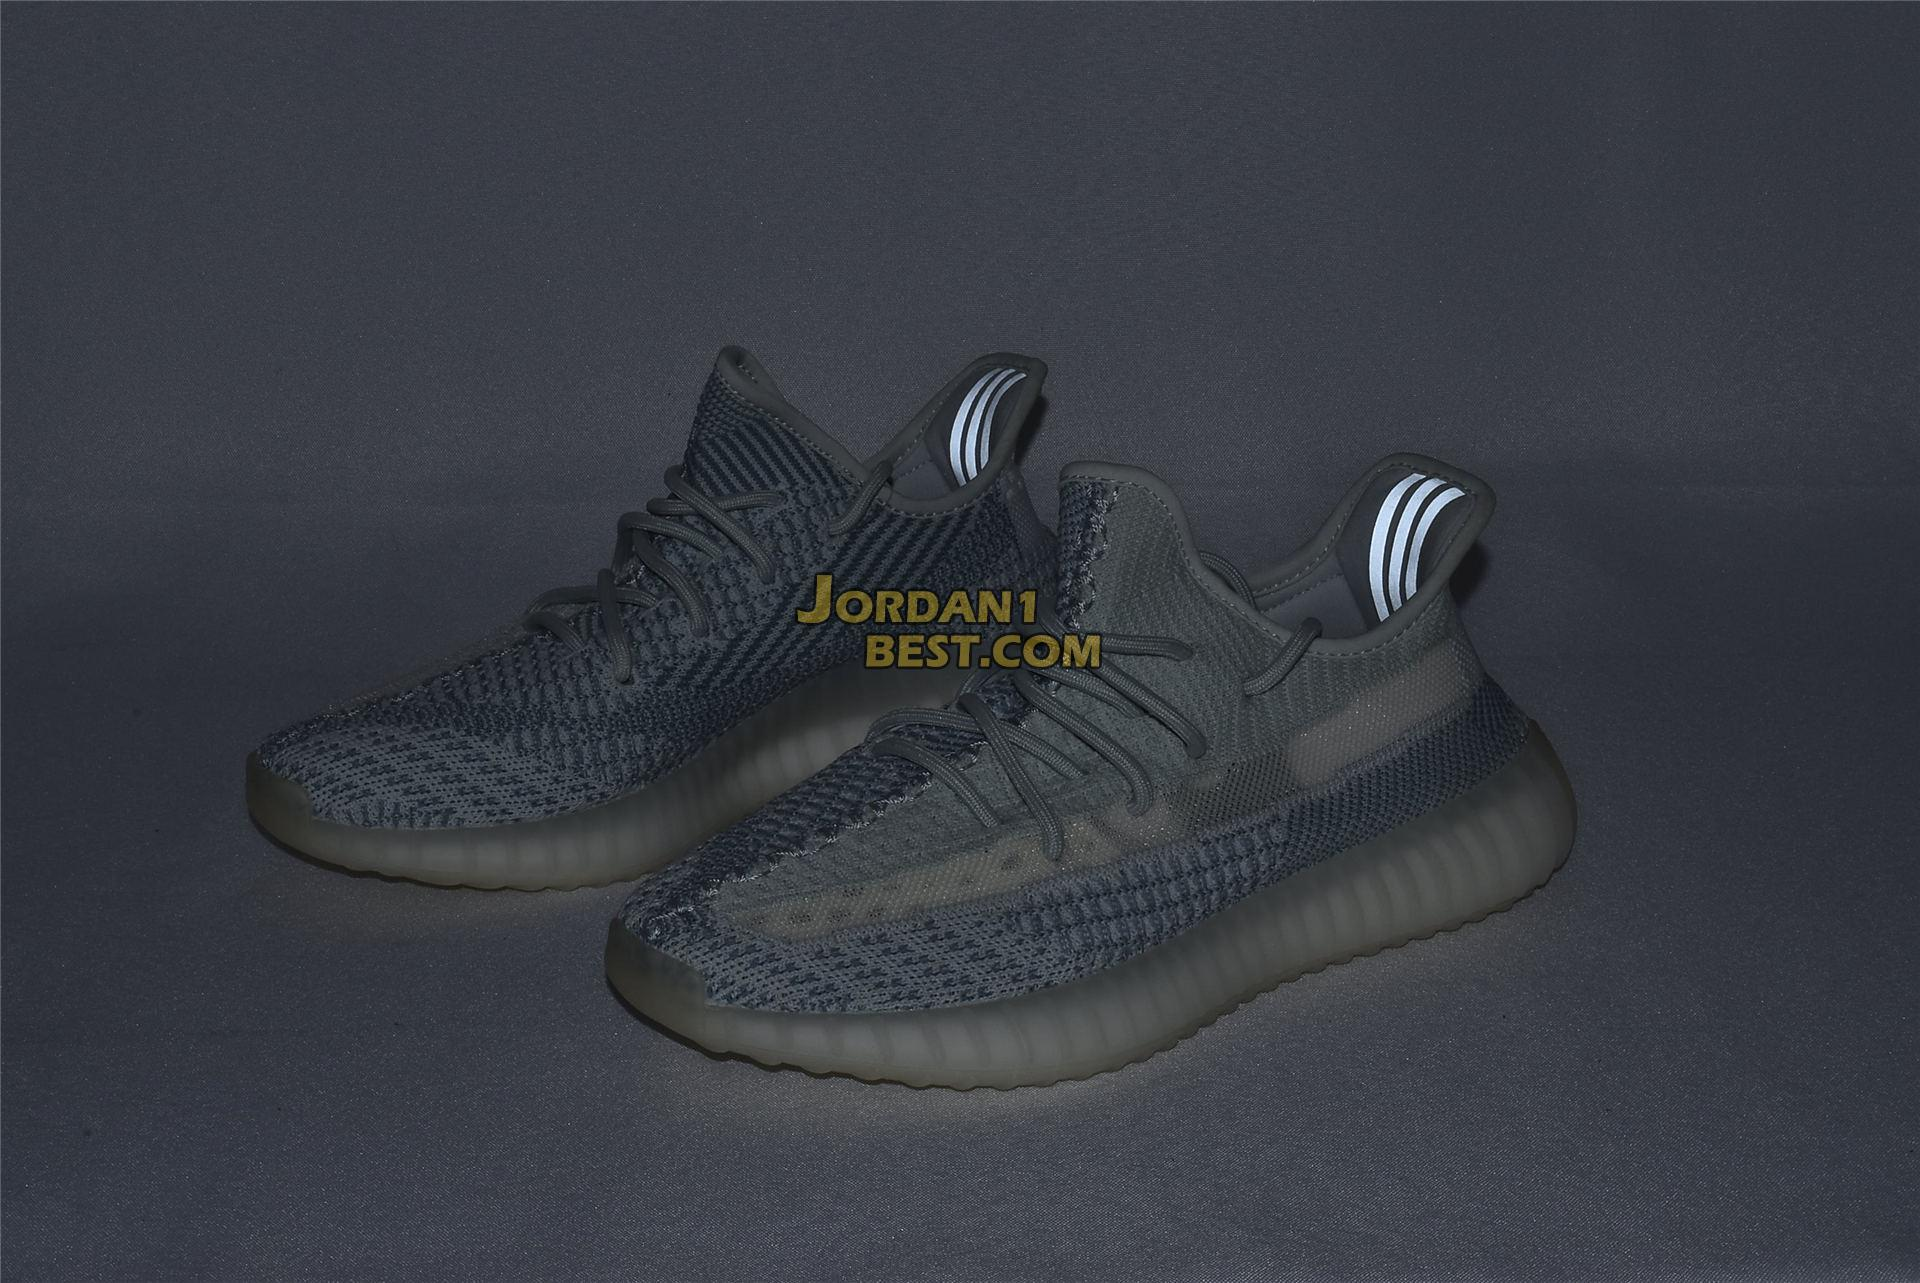 """Adidas Yeezy Boost 350 V2 """"Cloud White Non-Reflective"""" FW3043"""